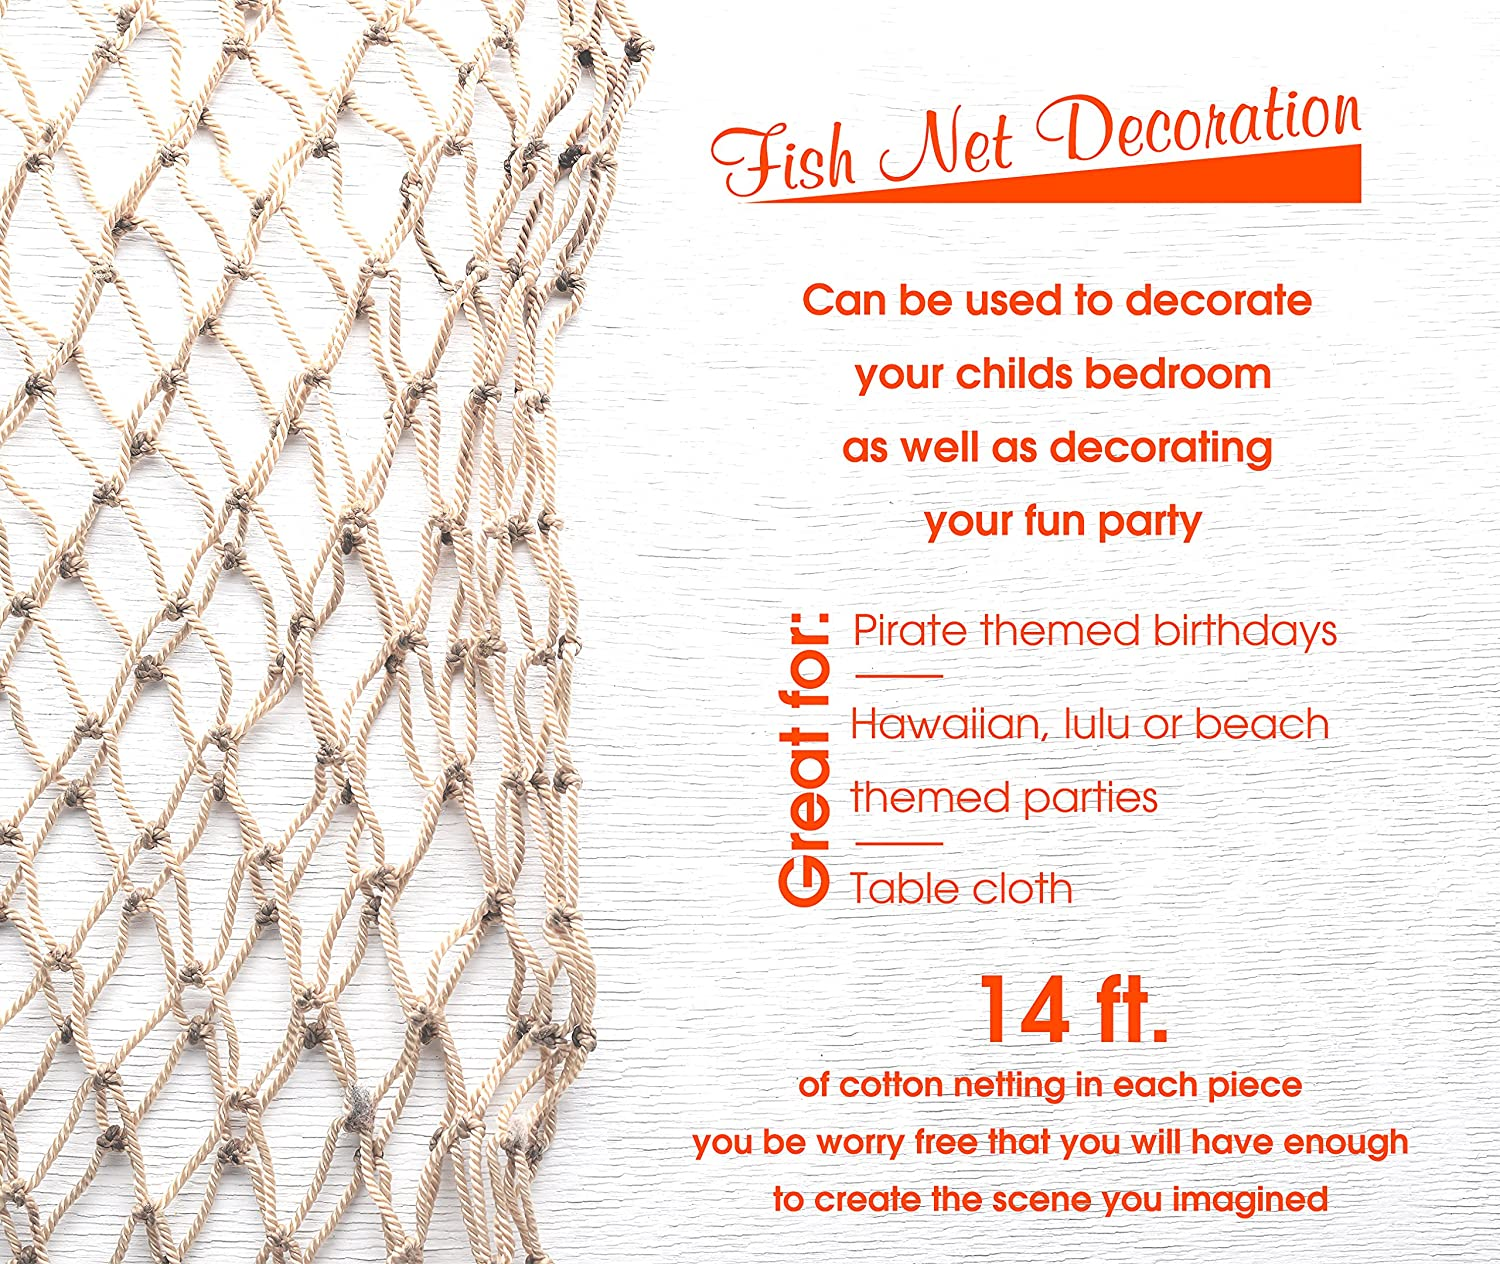 0e4dc69588e76 Amazon.com: Natural Fish Net Party Decorations for Pirate Party, Hawaiian  Party, Nautical Themed Cotton Fishnet Party Accessory by Big Mo's Toys:  Health ...